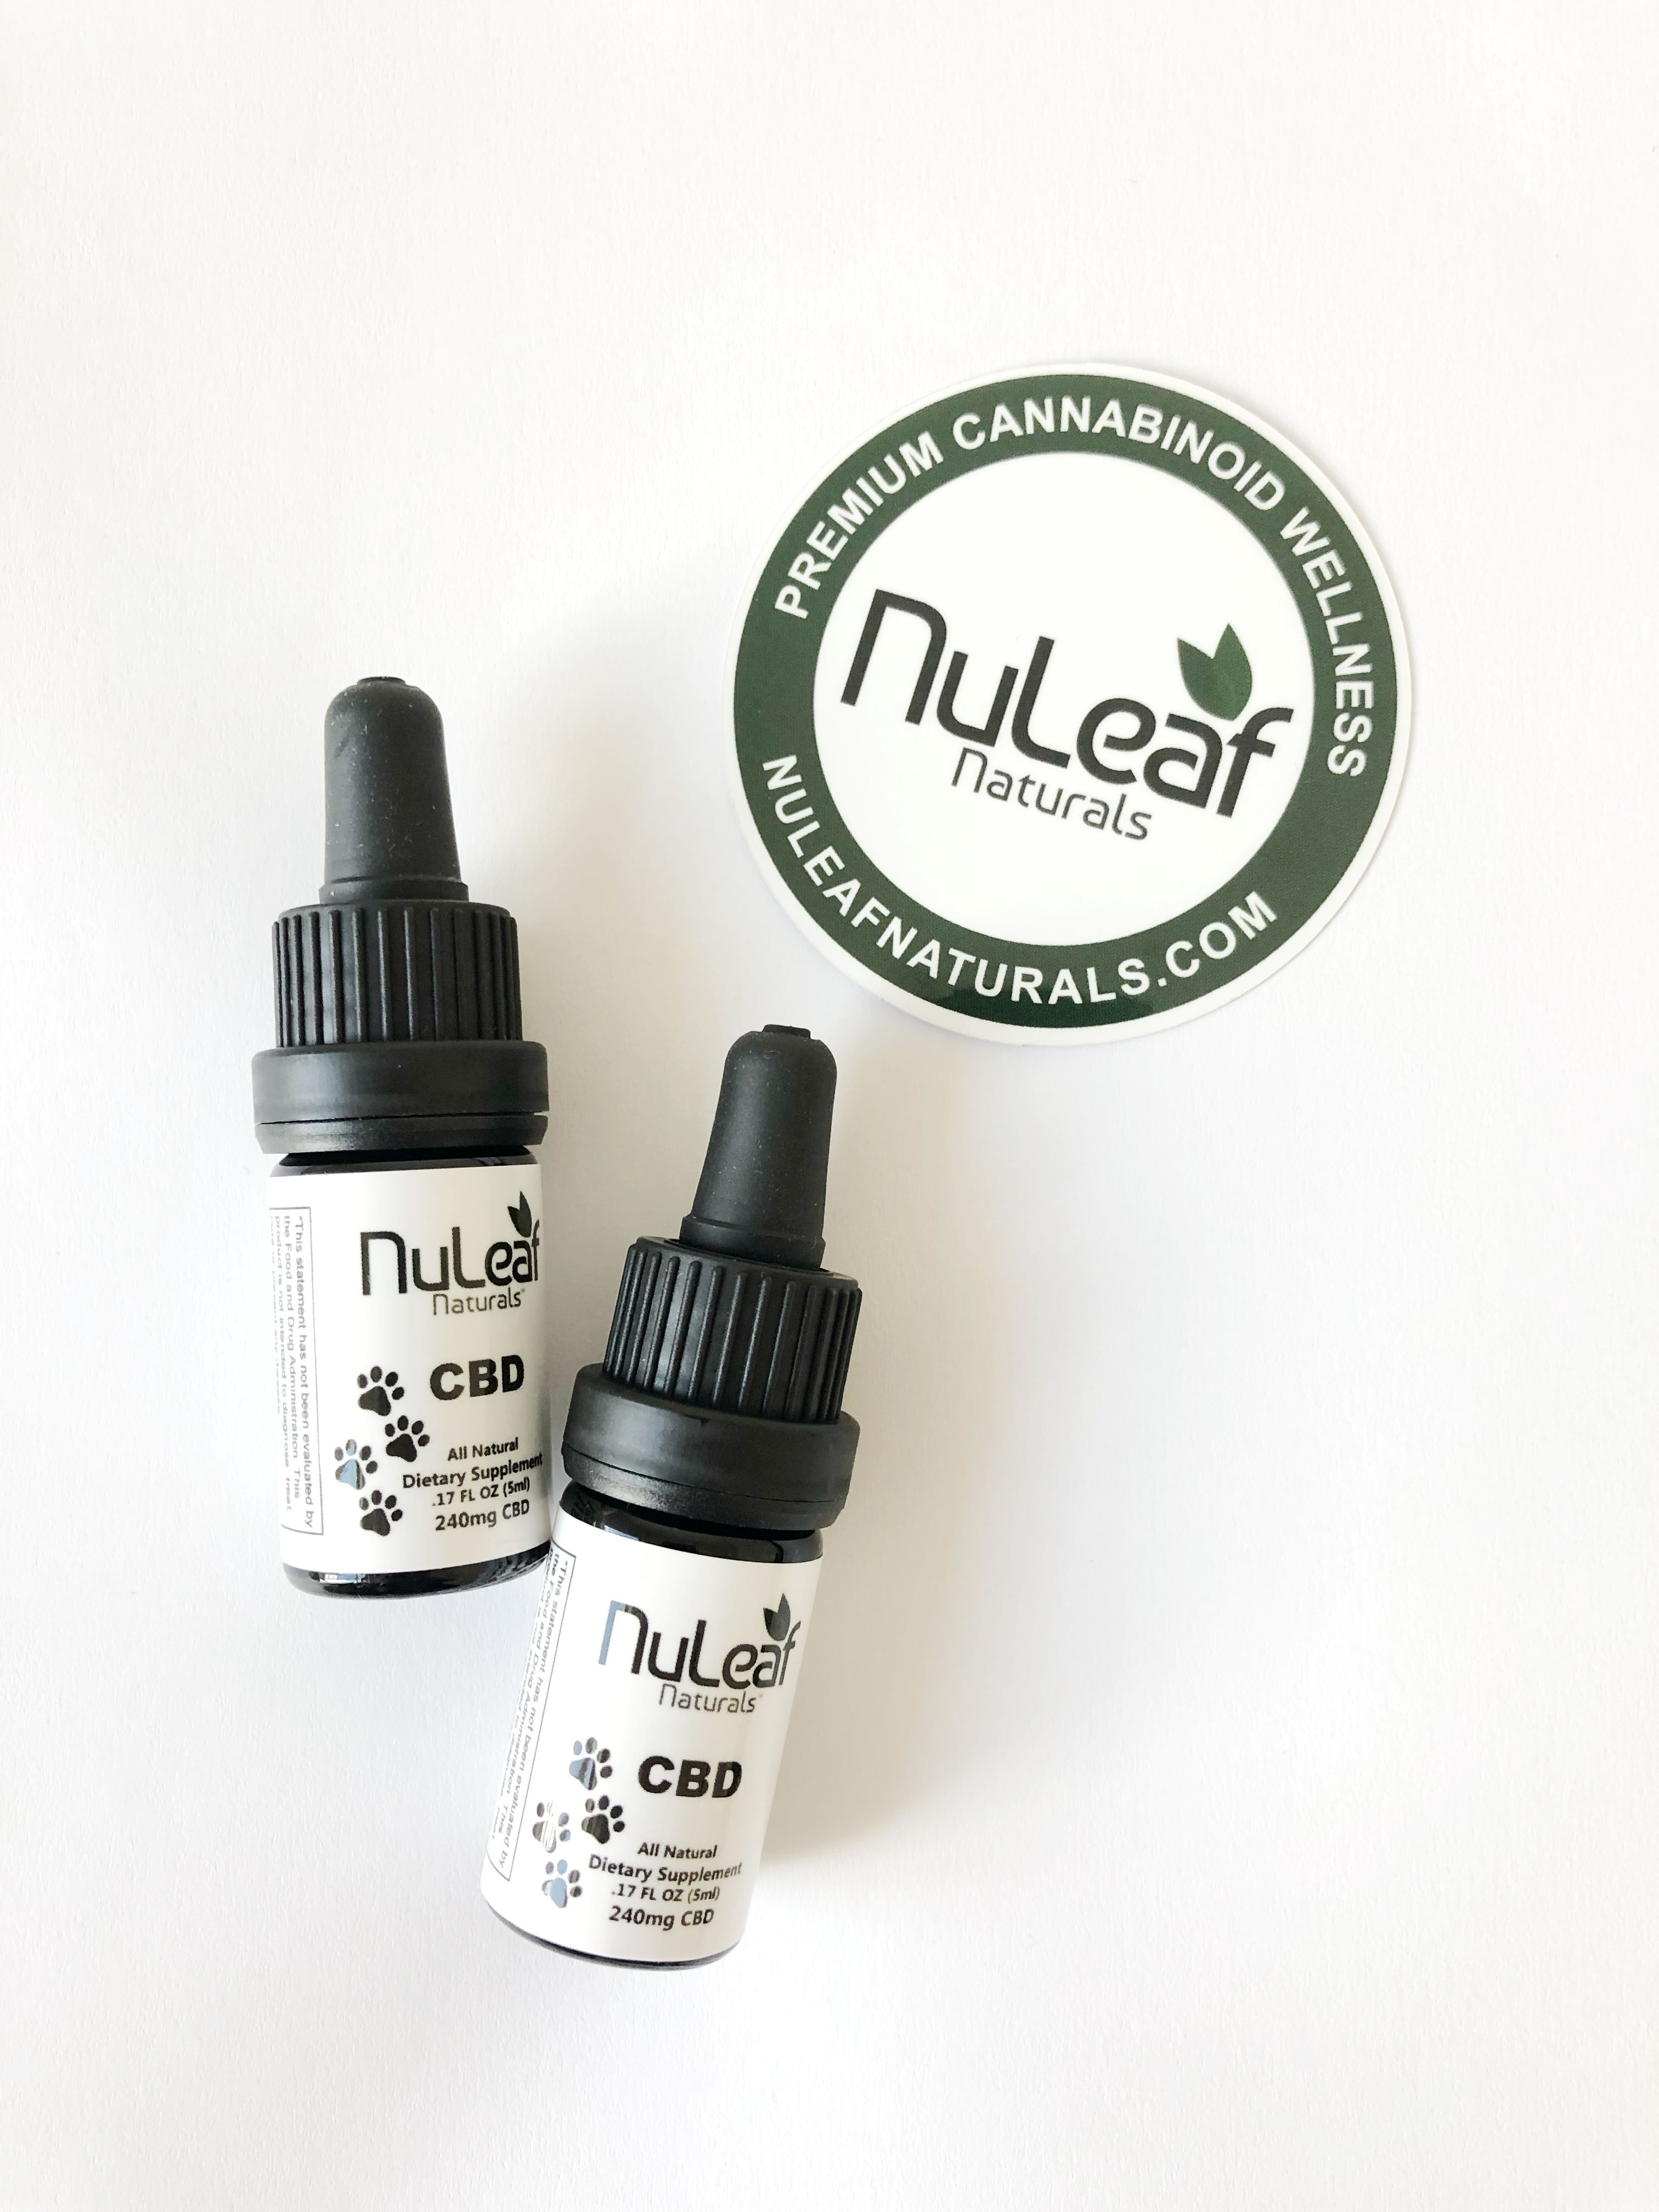 Do you know that NuLeaf was founded in 2014 by a group of health